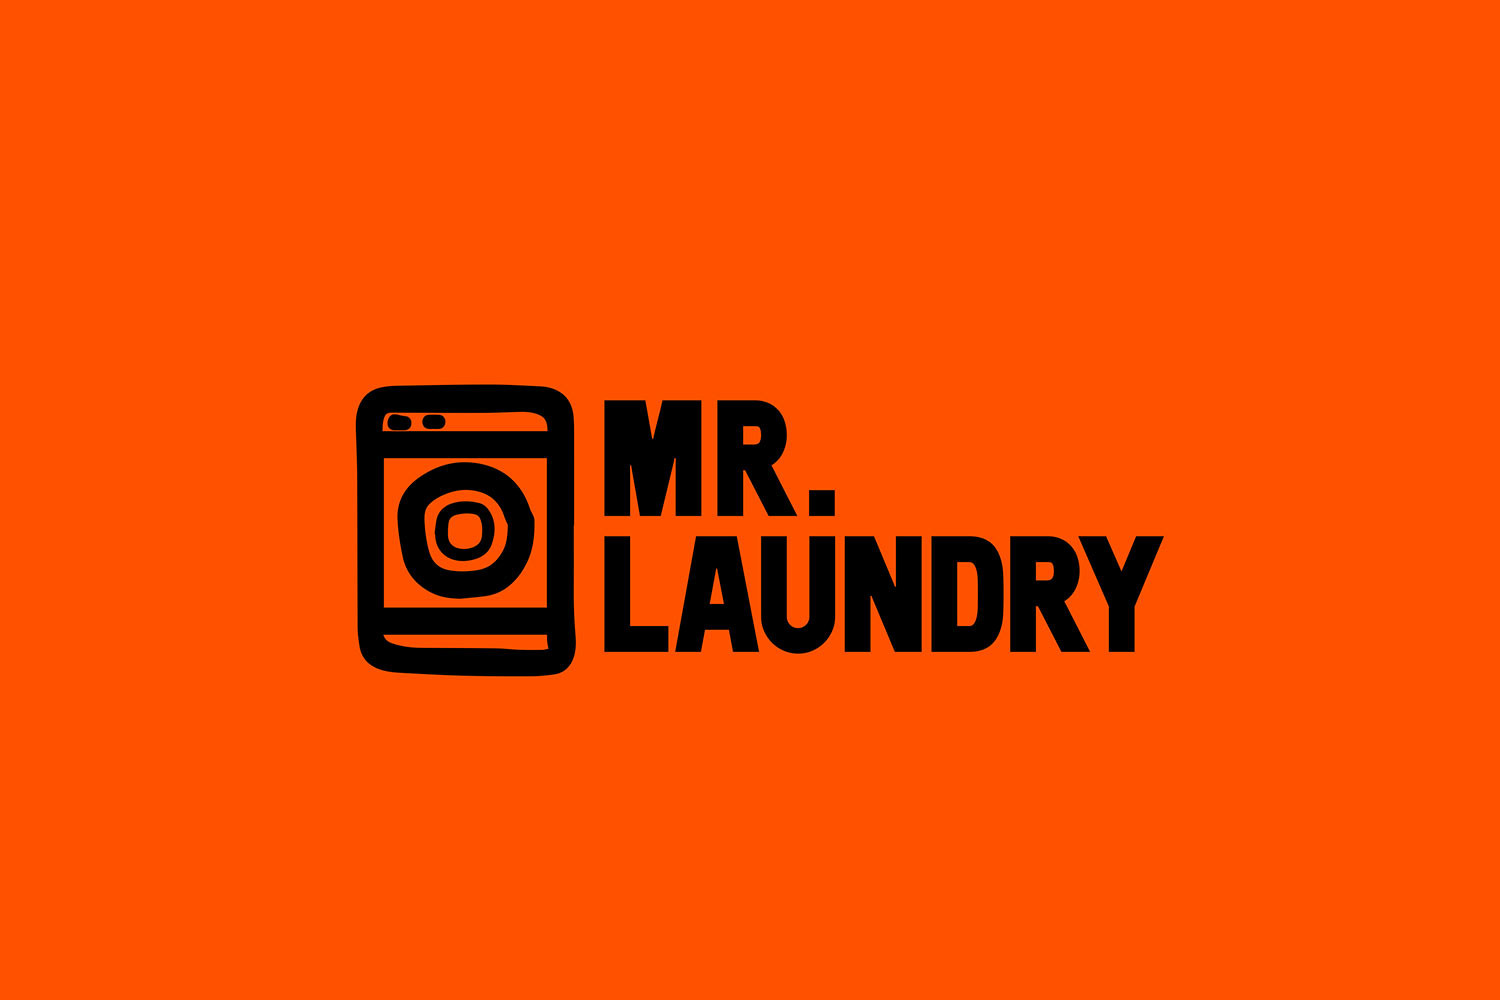 Mr-Laundry-Logo.jpg